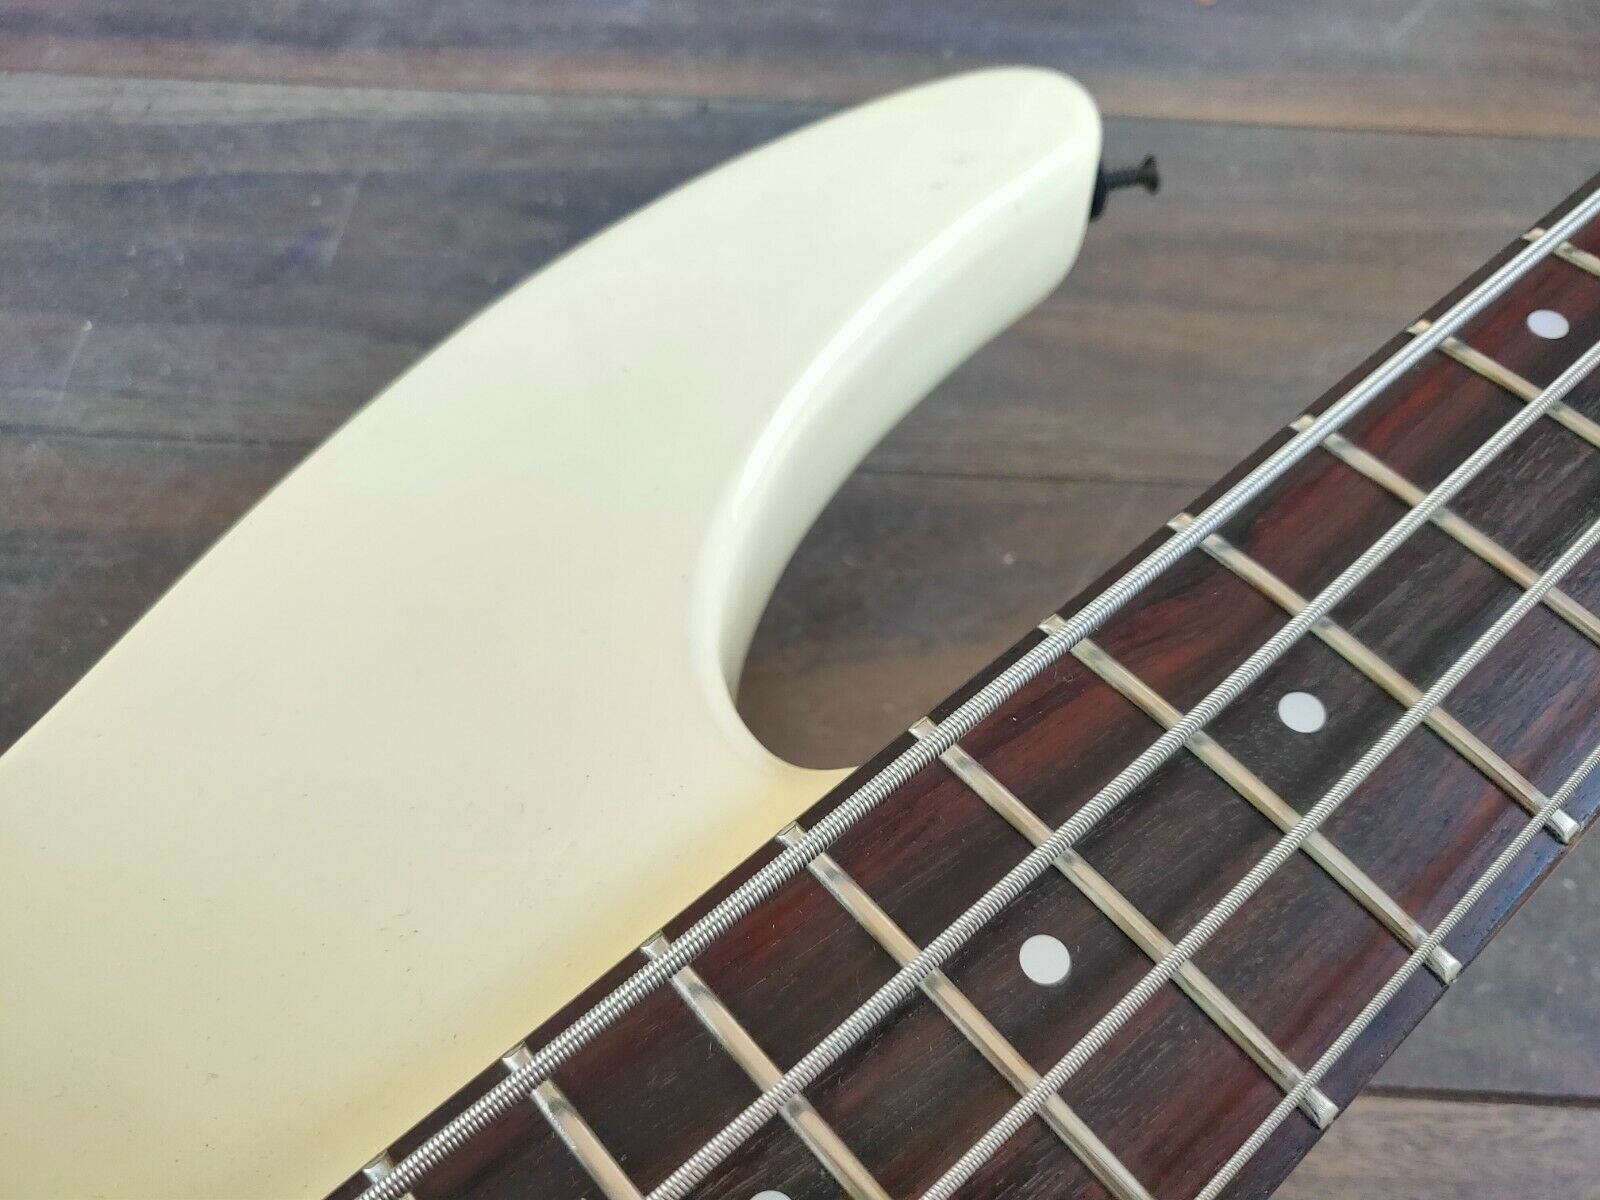 1985 Greco Japan JJB-1 Medium Scale Electric Bass Guitar (White)